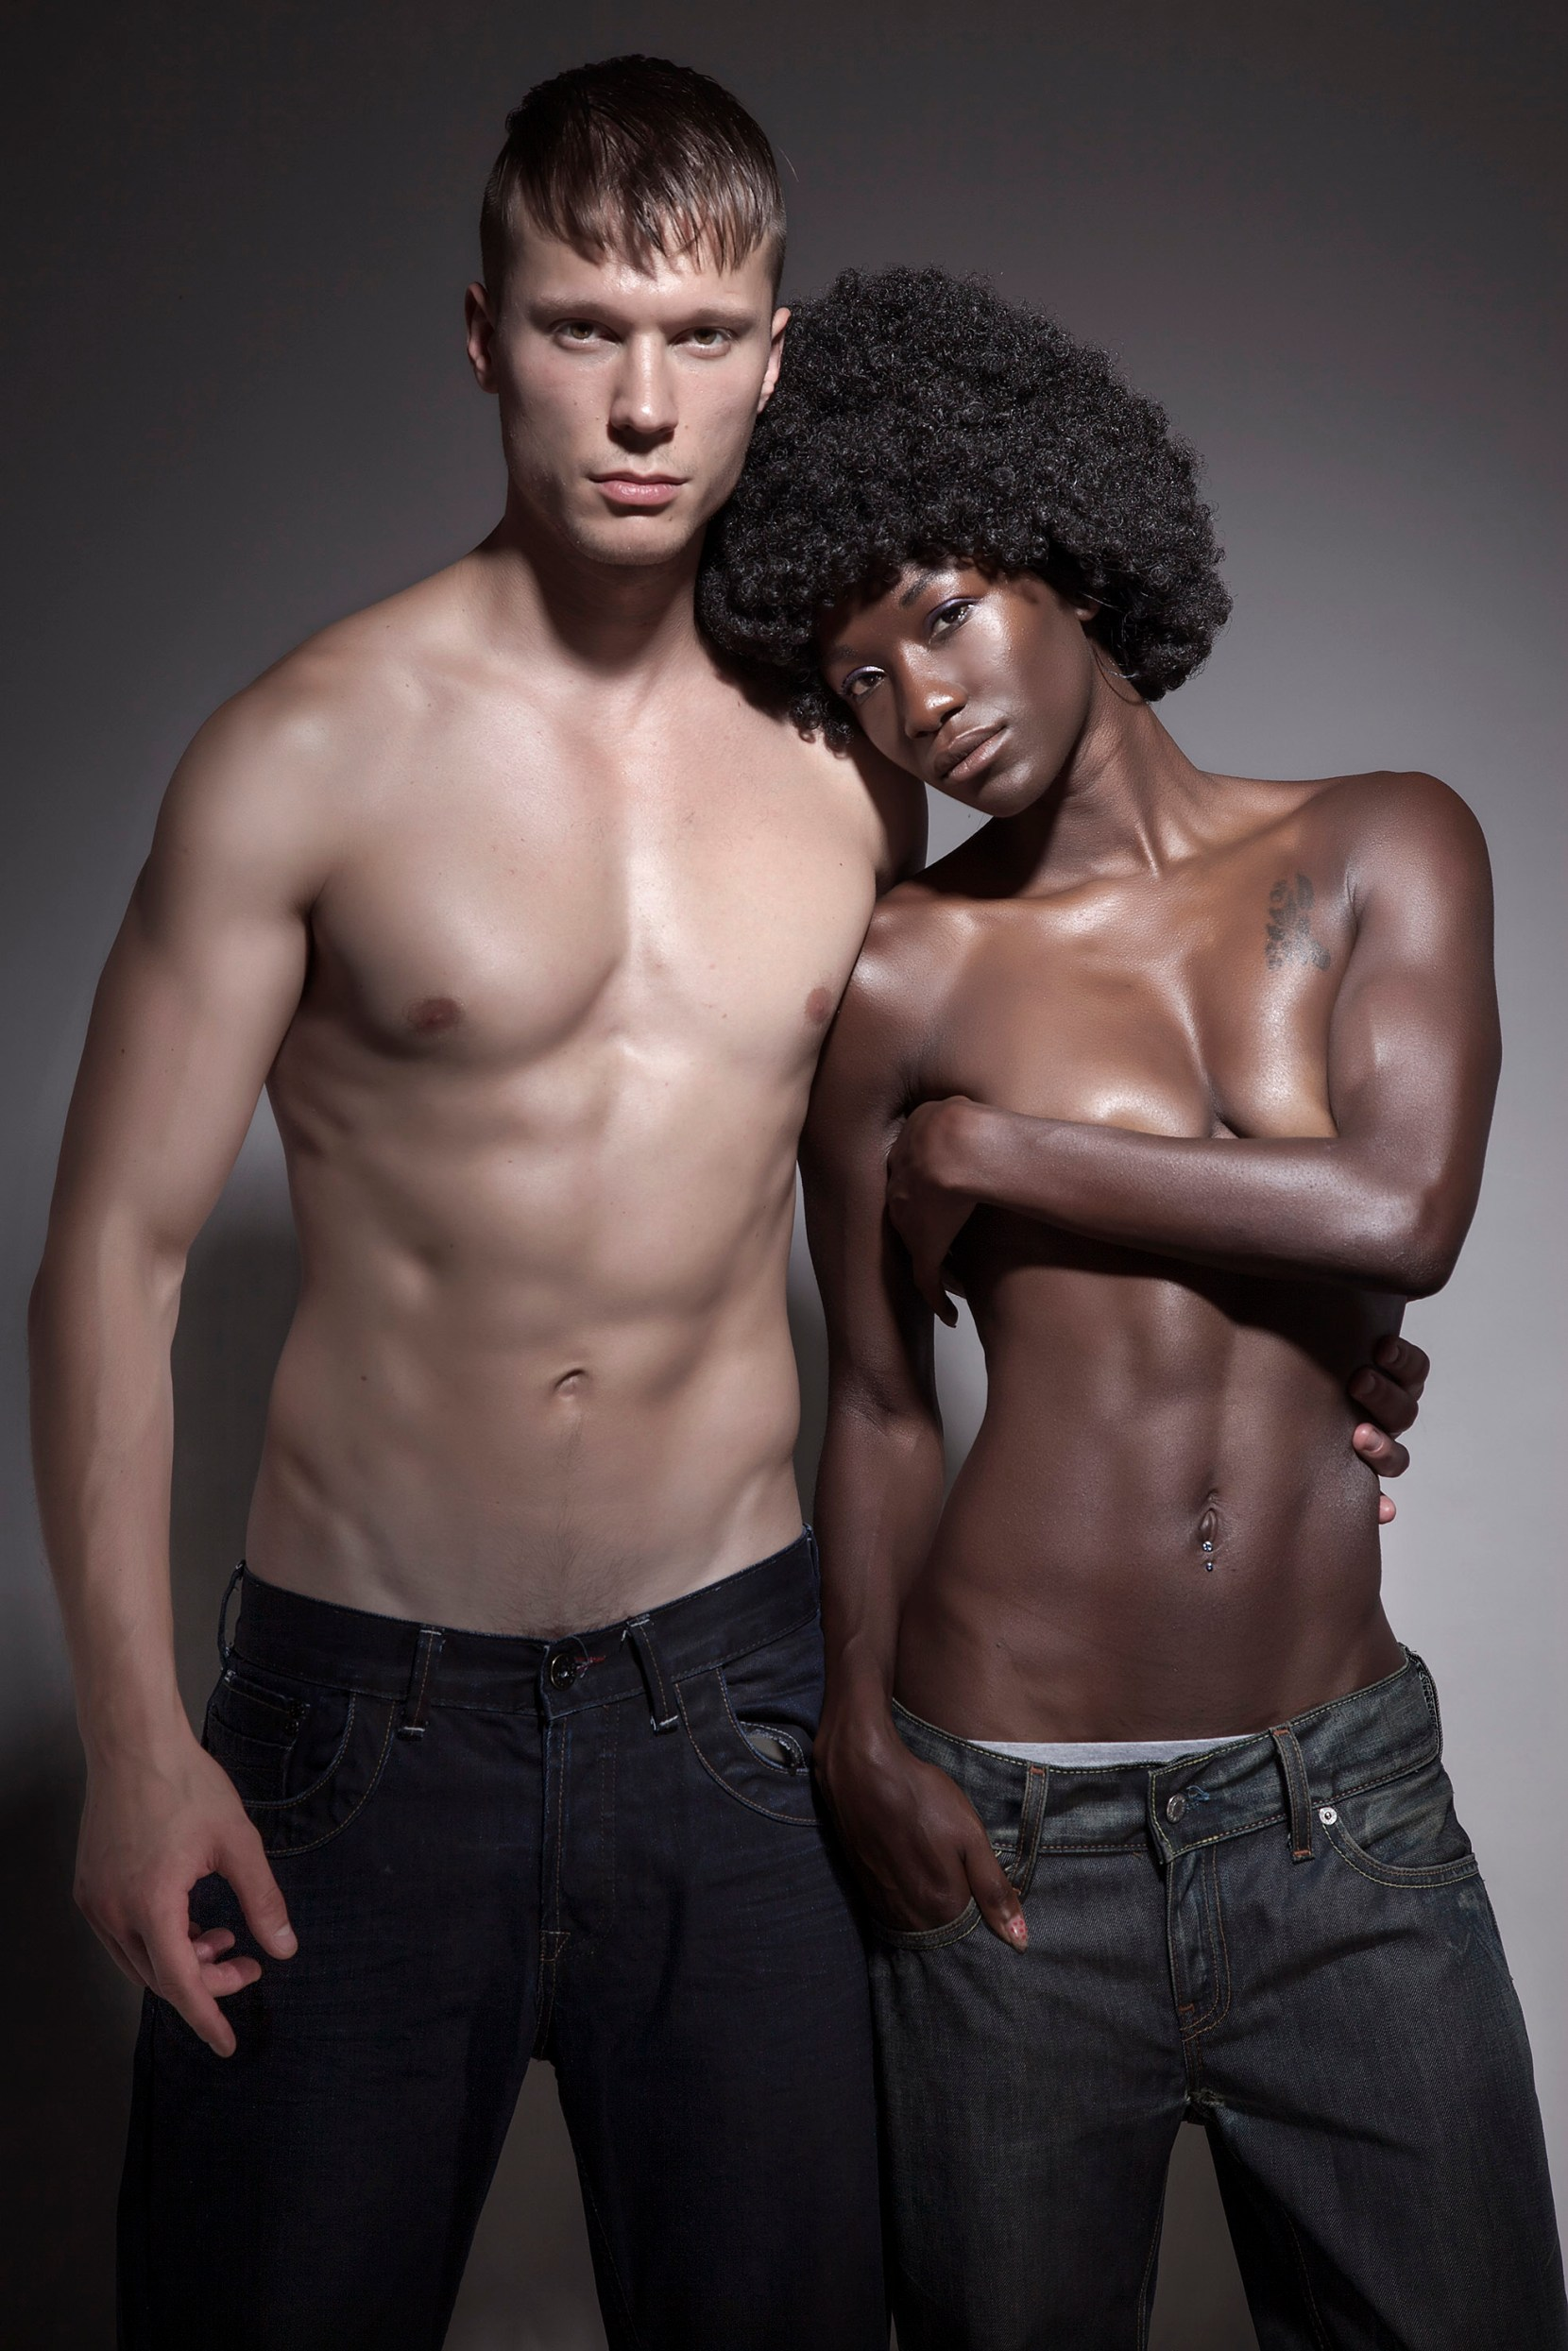 Interracial Love shot by Steph Dray